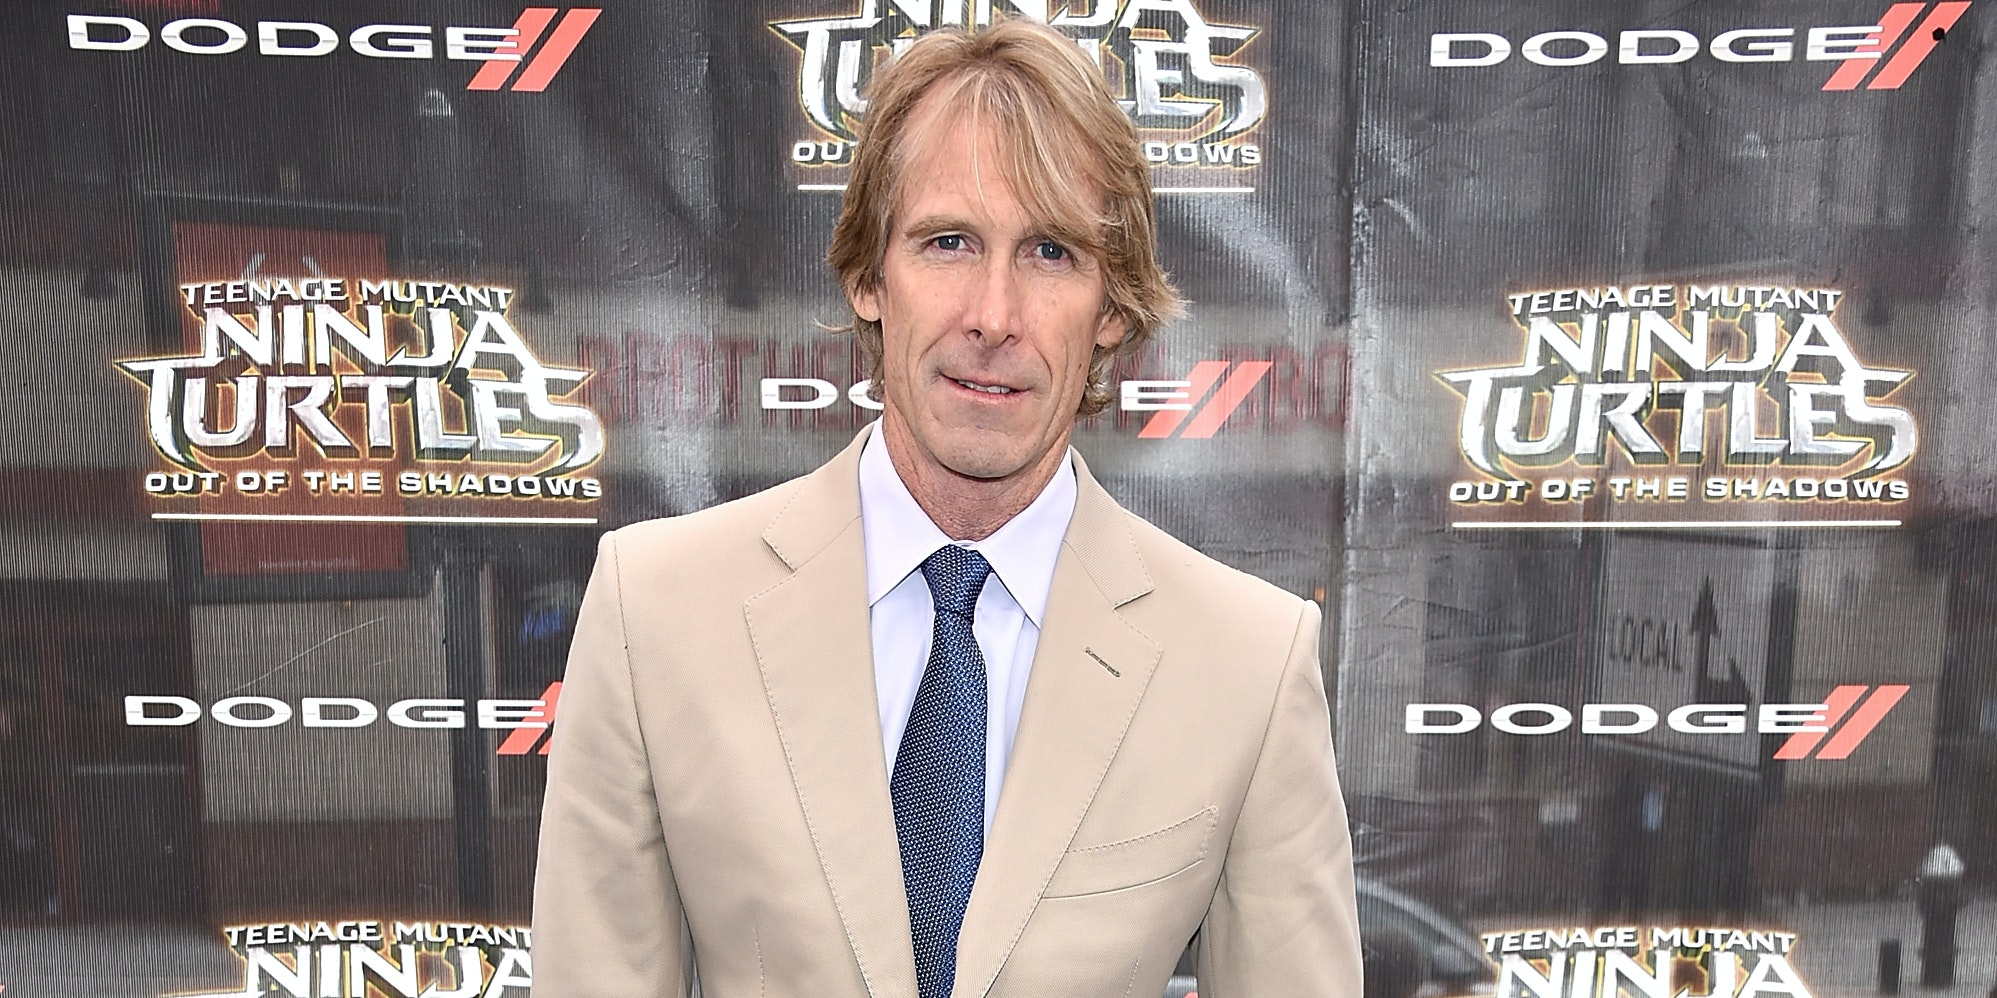 NEW YORK, NY - MAY 22:  Michael Bay attends the 'Teenage Mutant Ninja Turtles: Out Of The Shadows'  World Premiere at Madison Square Garden on May 22, 2016 in New York City.  (Photo by Dimitrios Kambouris/Getty Images)